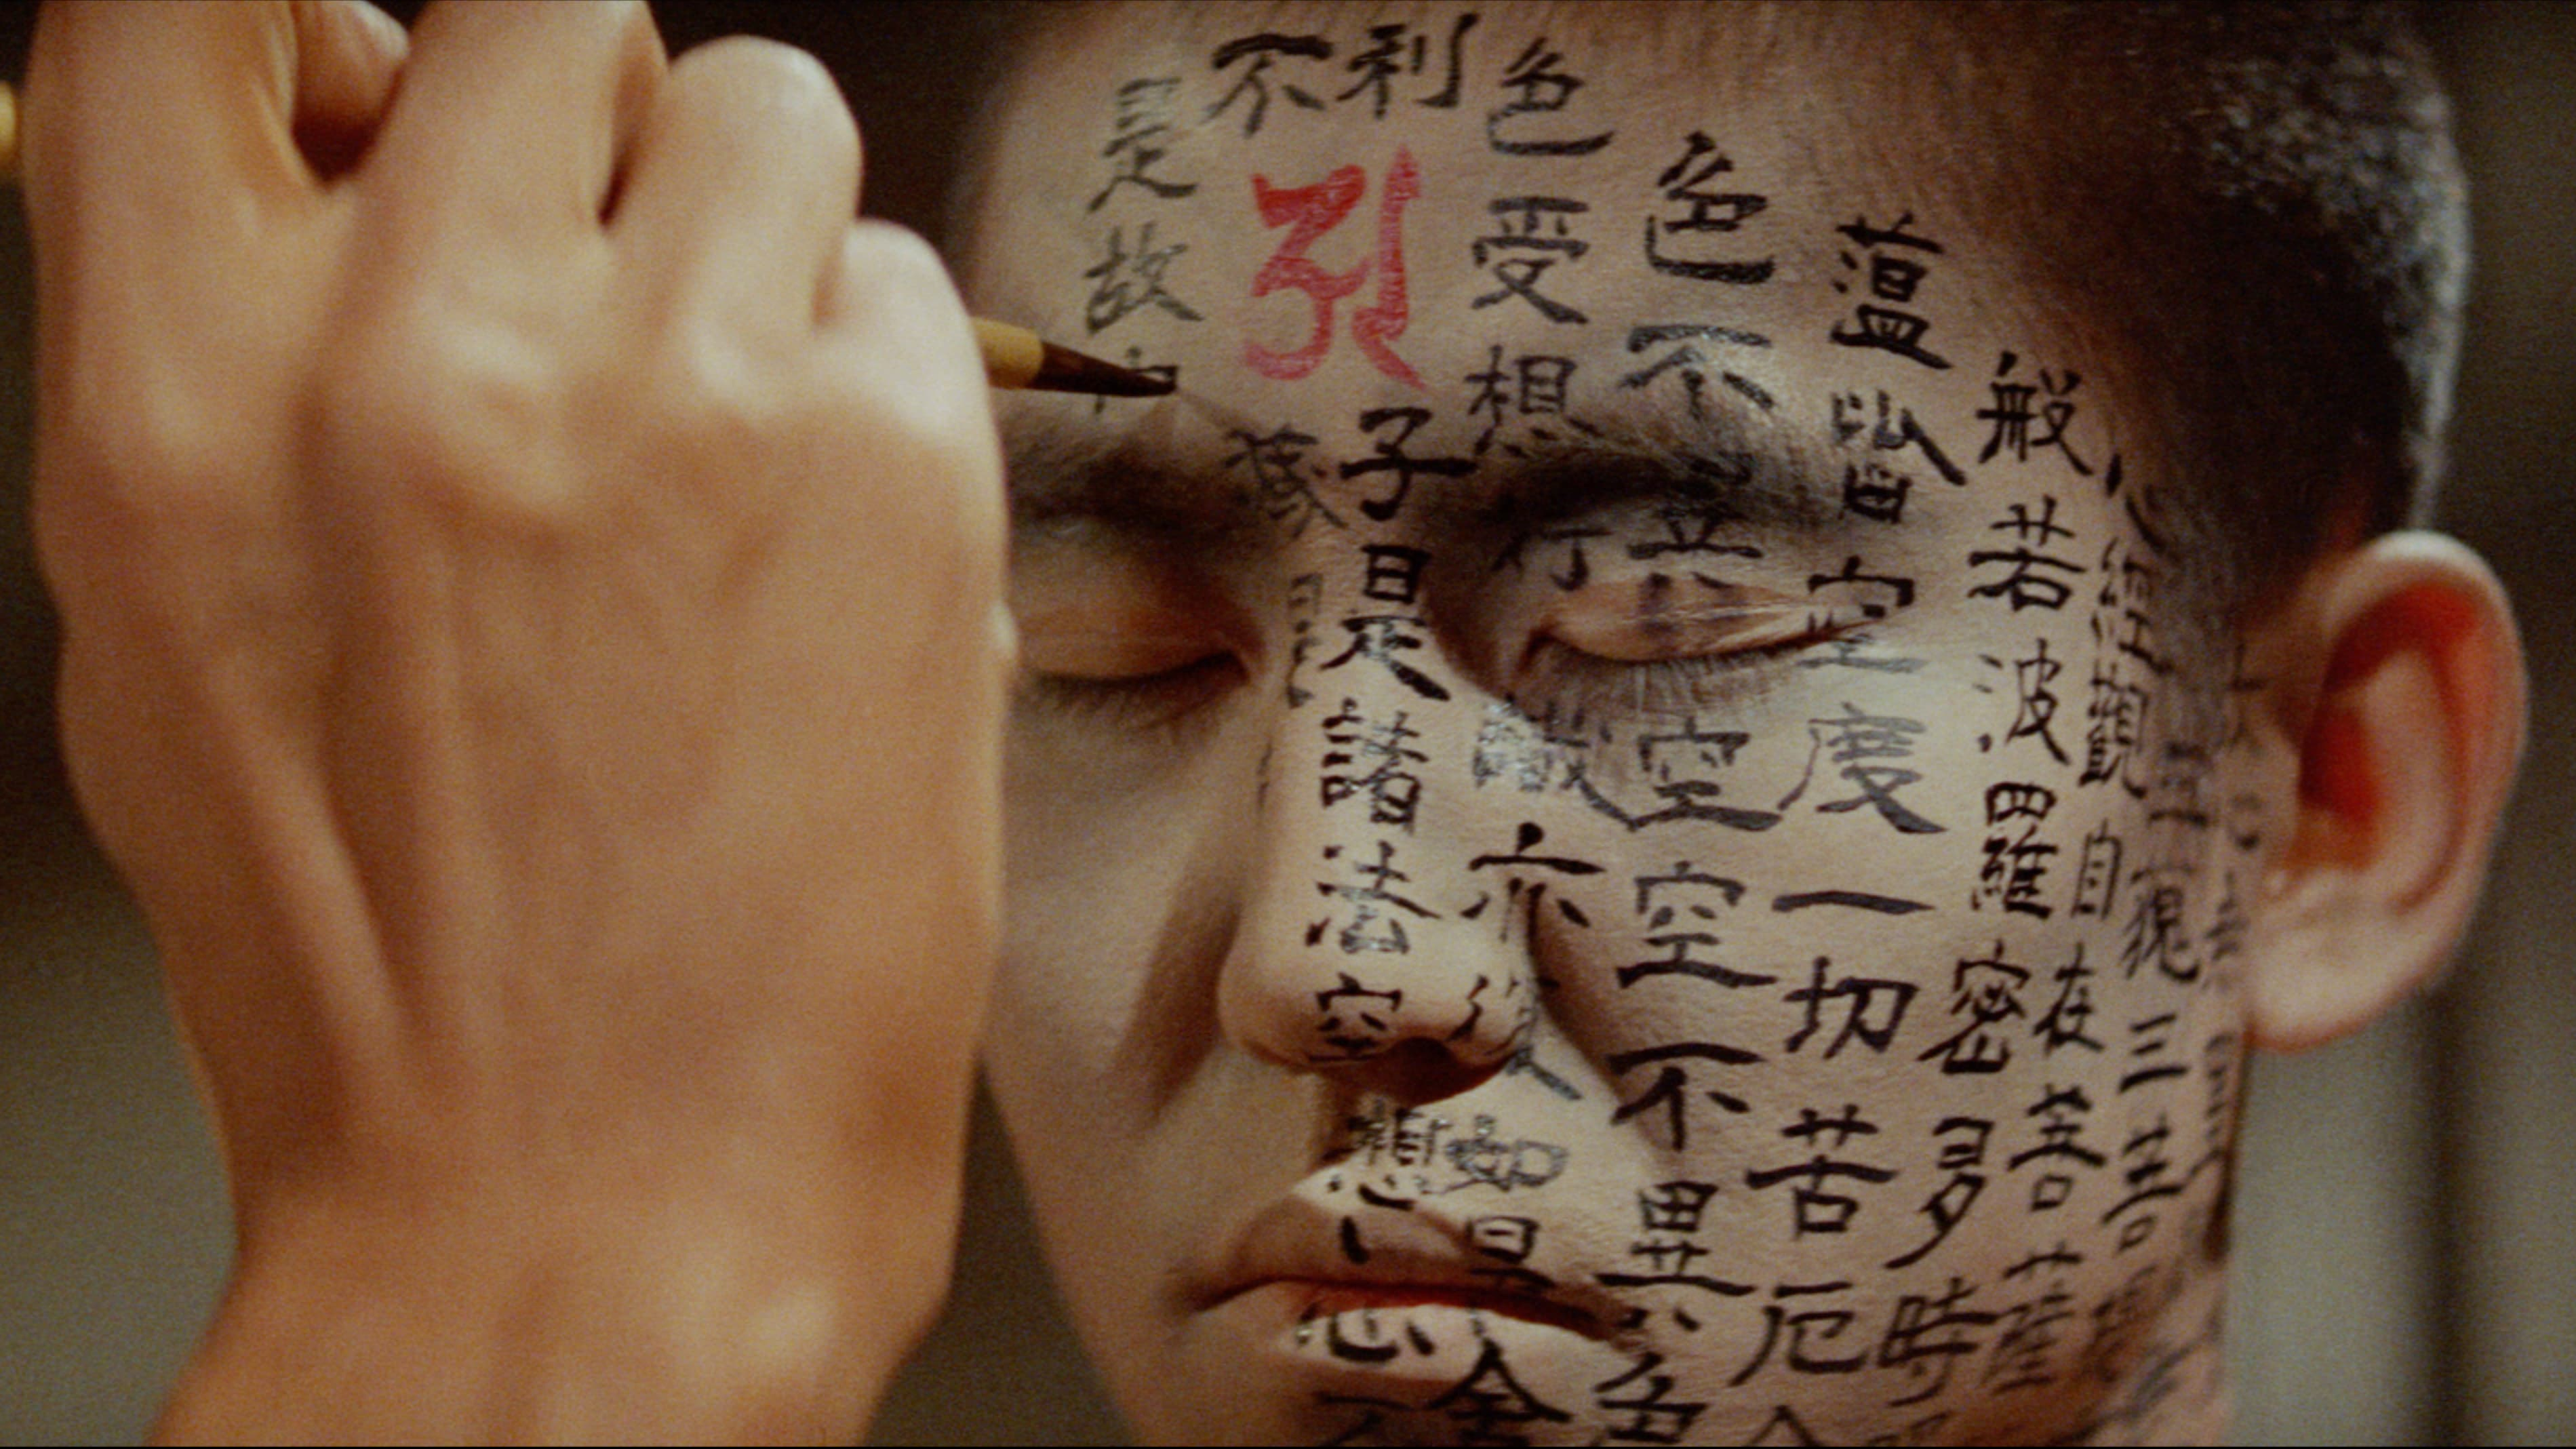 Kwaidan / 怪談 / Ghost Stories (Masaki Kobayashi, 1964), Eureka Entertainment, Japan, 35mm, colour, sound, 183 minutes